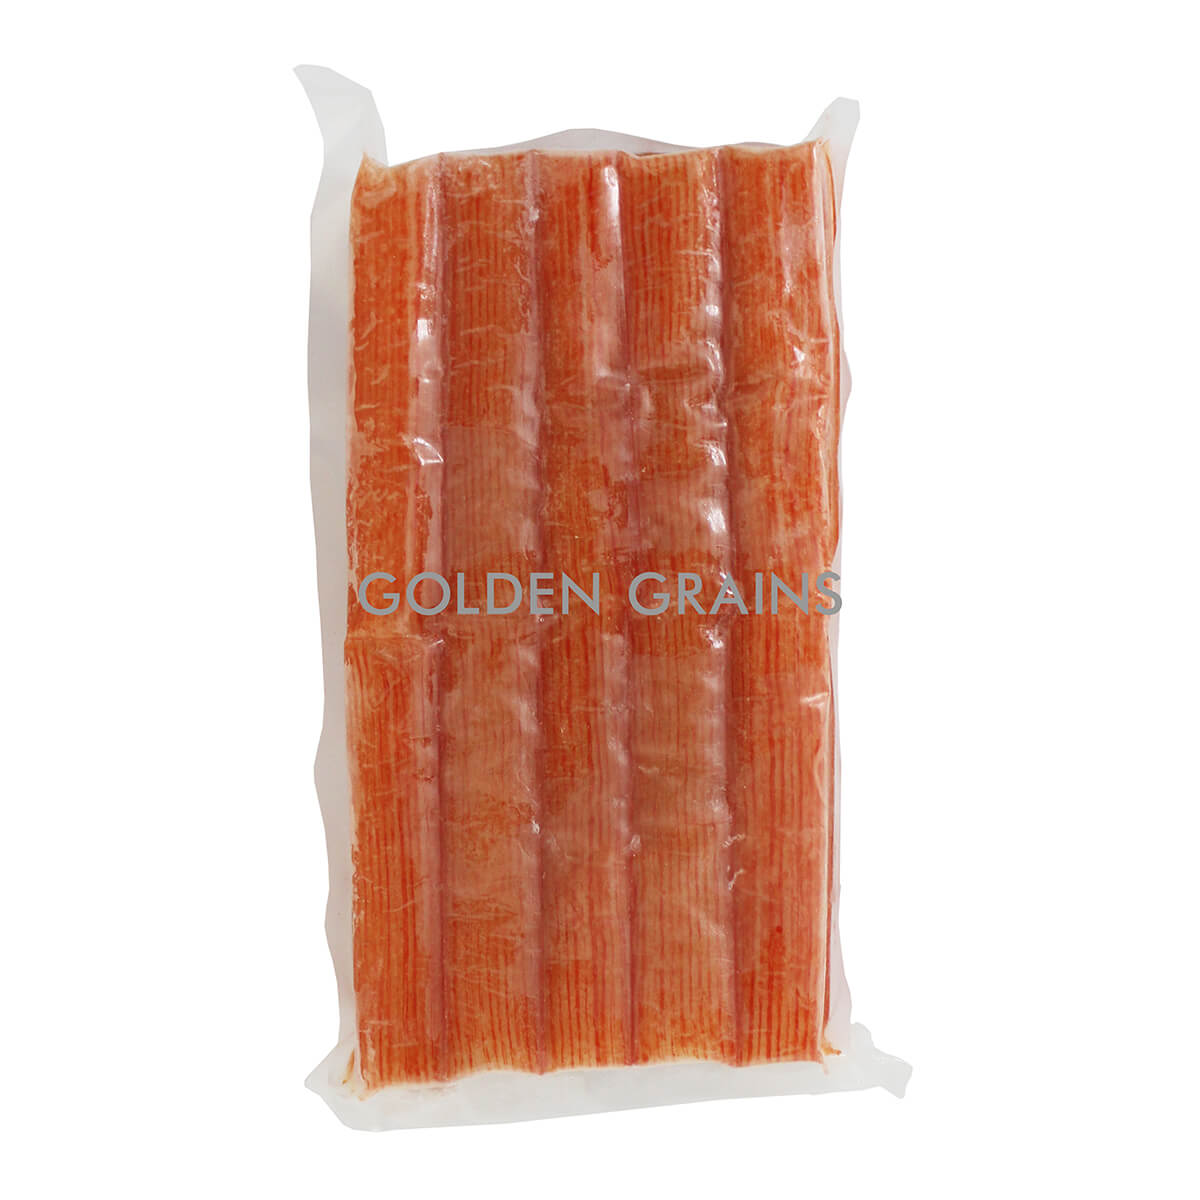 Golden Grains Osaki Style - Surimi Crab Stick - 500G - Japan - Back.jpg